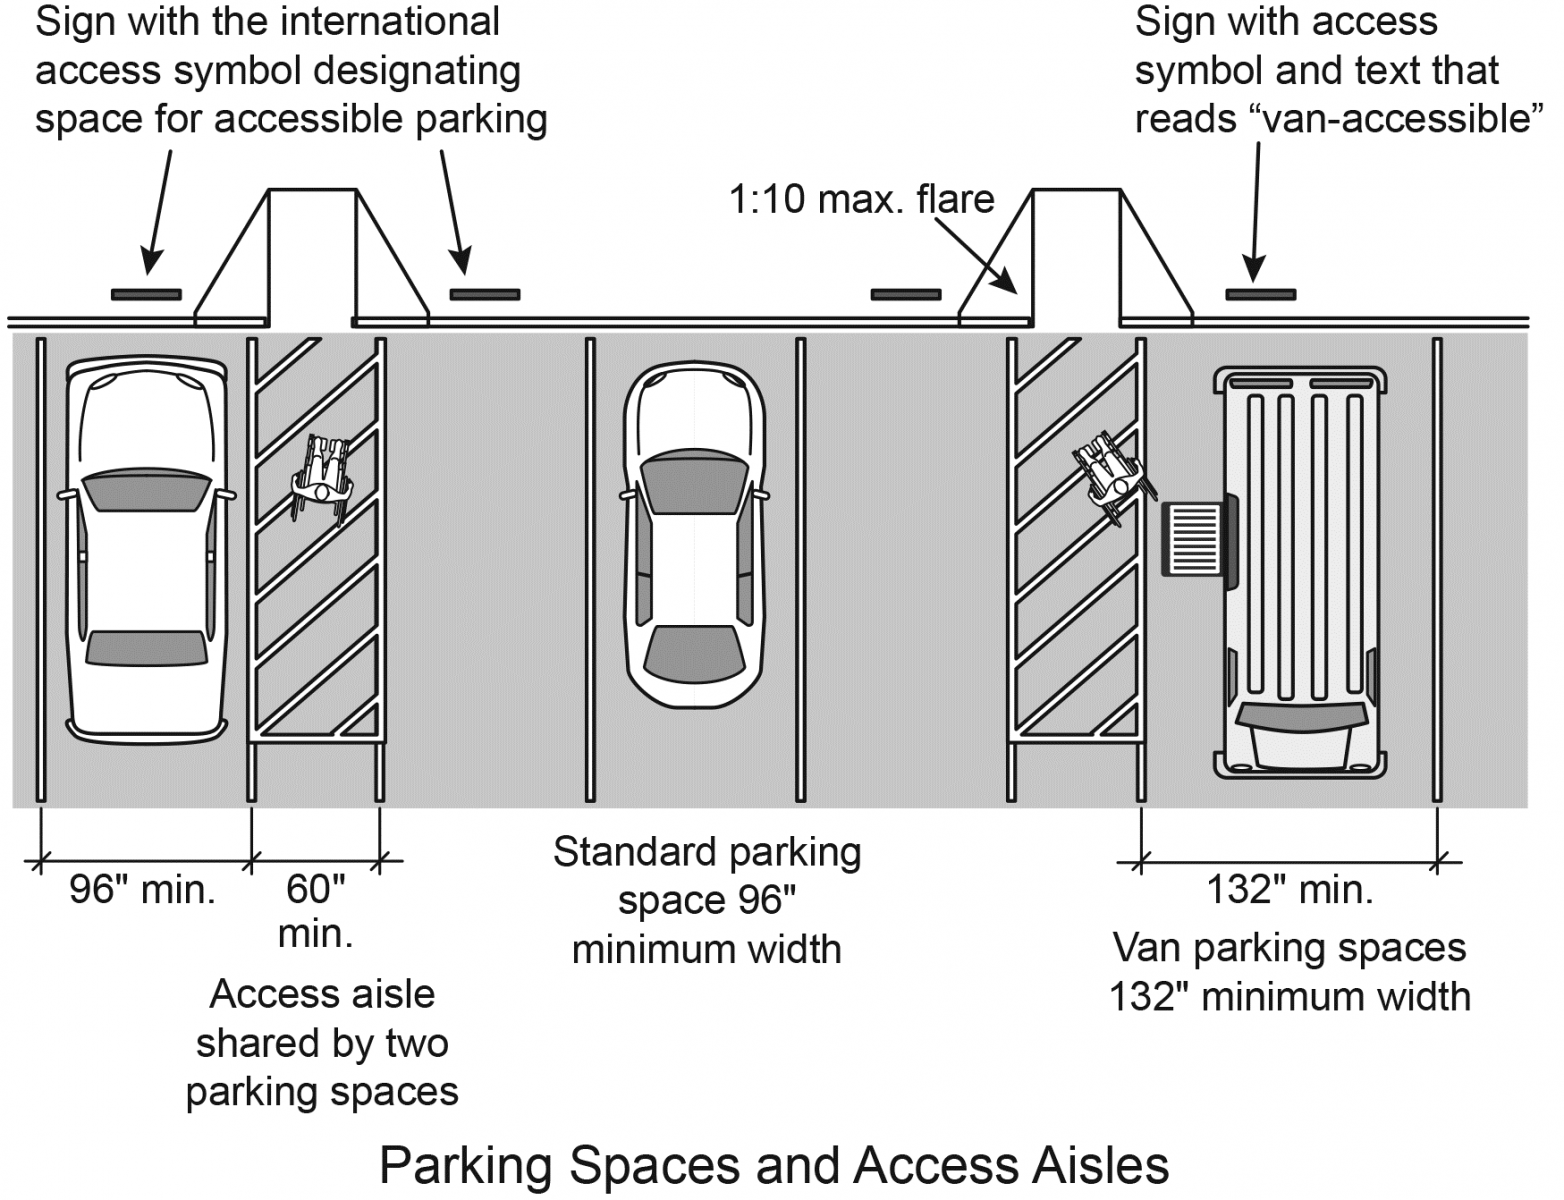 "Figure 5: Access aisles next to accessible parking spaces must be at least 60 inches wide. Accessible van parking spaces must be at least 132 inches wide; accessible car spaces must be at least 96 inches wide. Signs at each space read ""Van-accessible"" and show the access symbol."